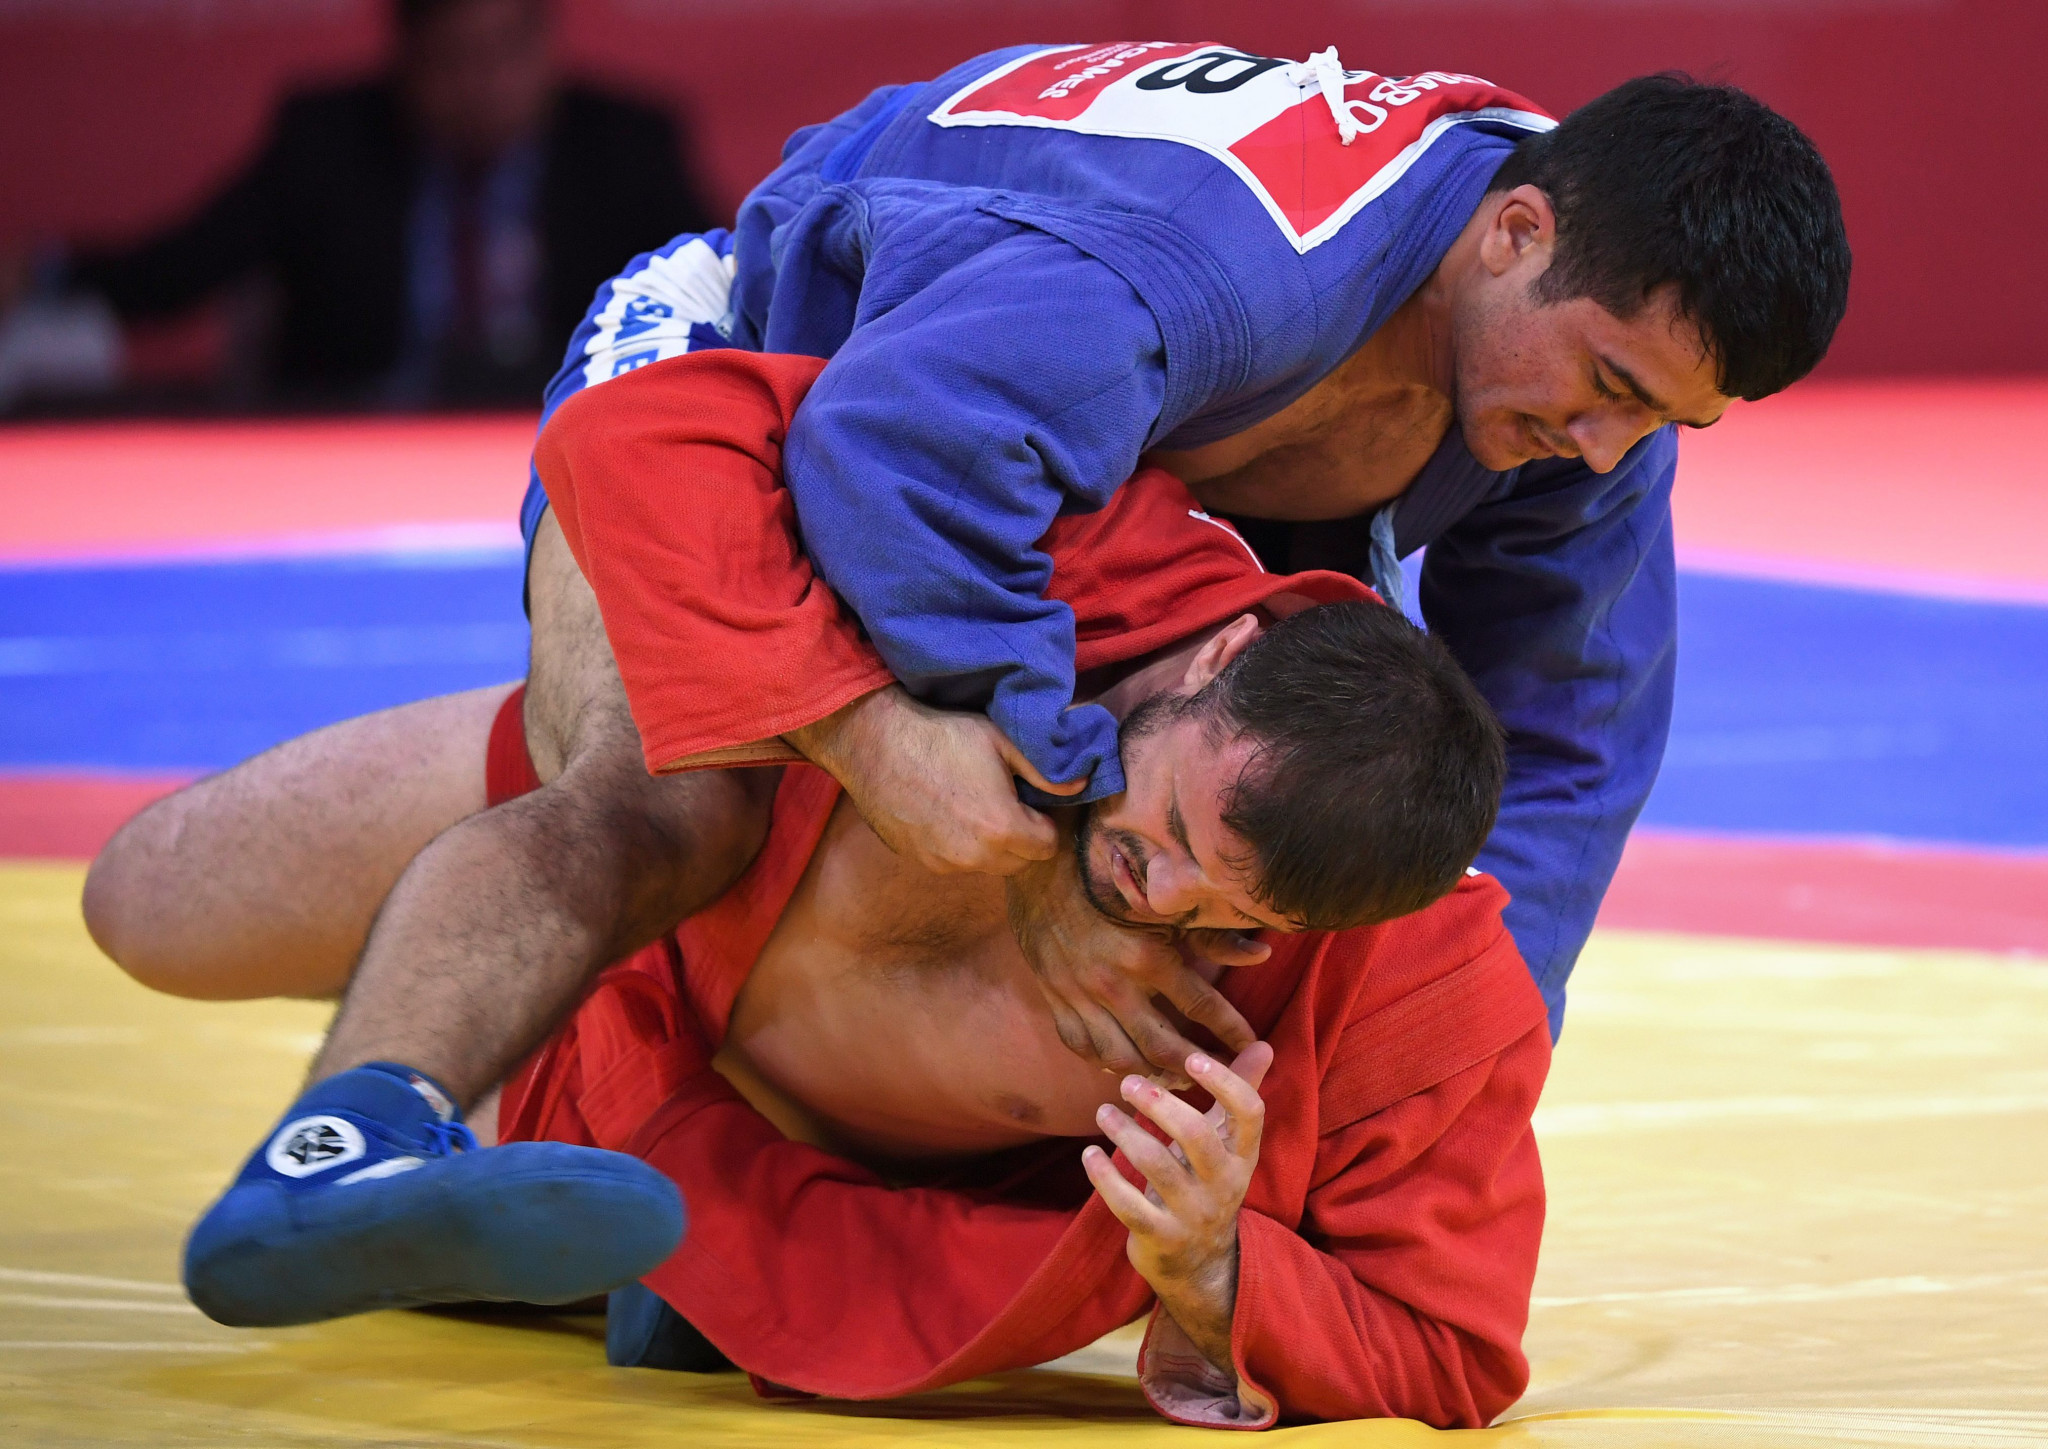 Sambo featured at the Asian Games, the world's second largest multi-sport event, for the first time this year  ©FIAS